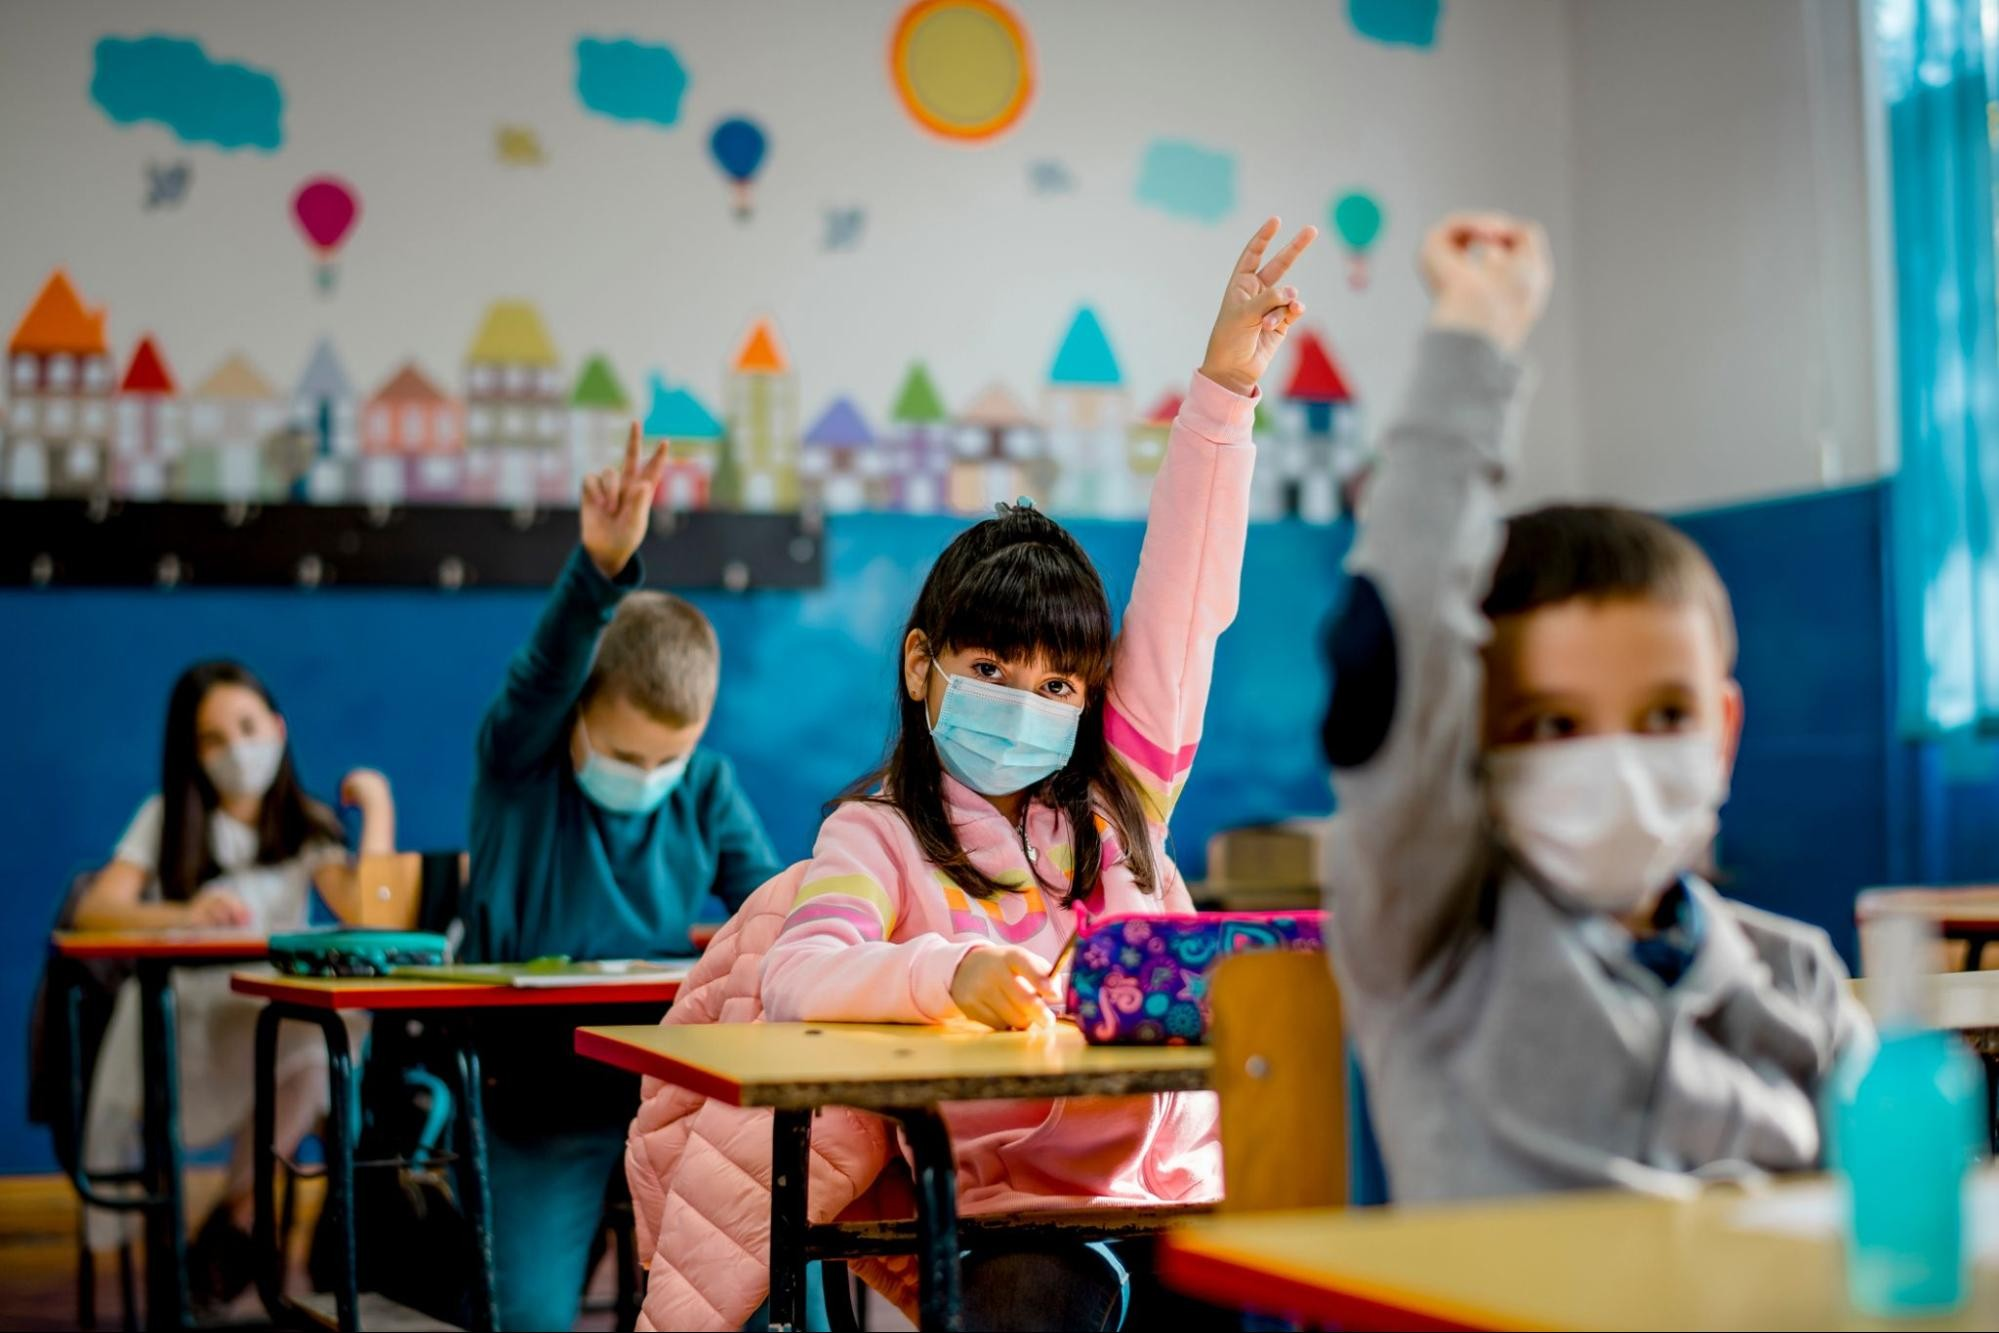 Four children sit in a row of desks, wearing masks and raising their hands, as they return to in-person learning after COVID-19.